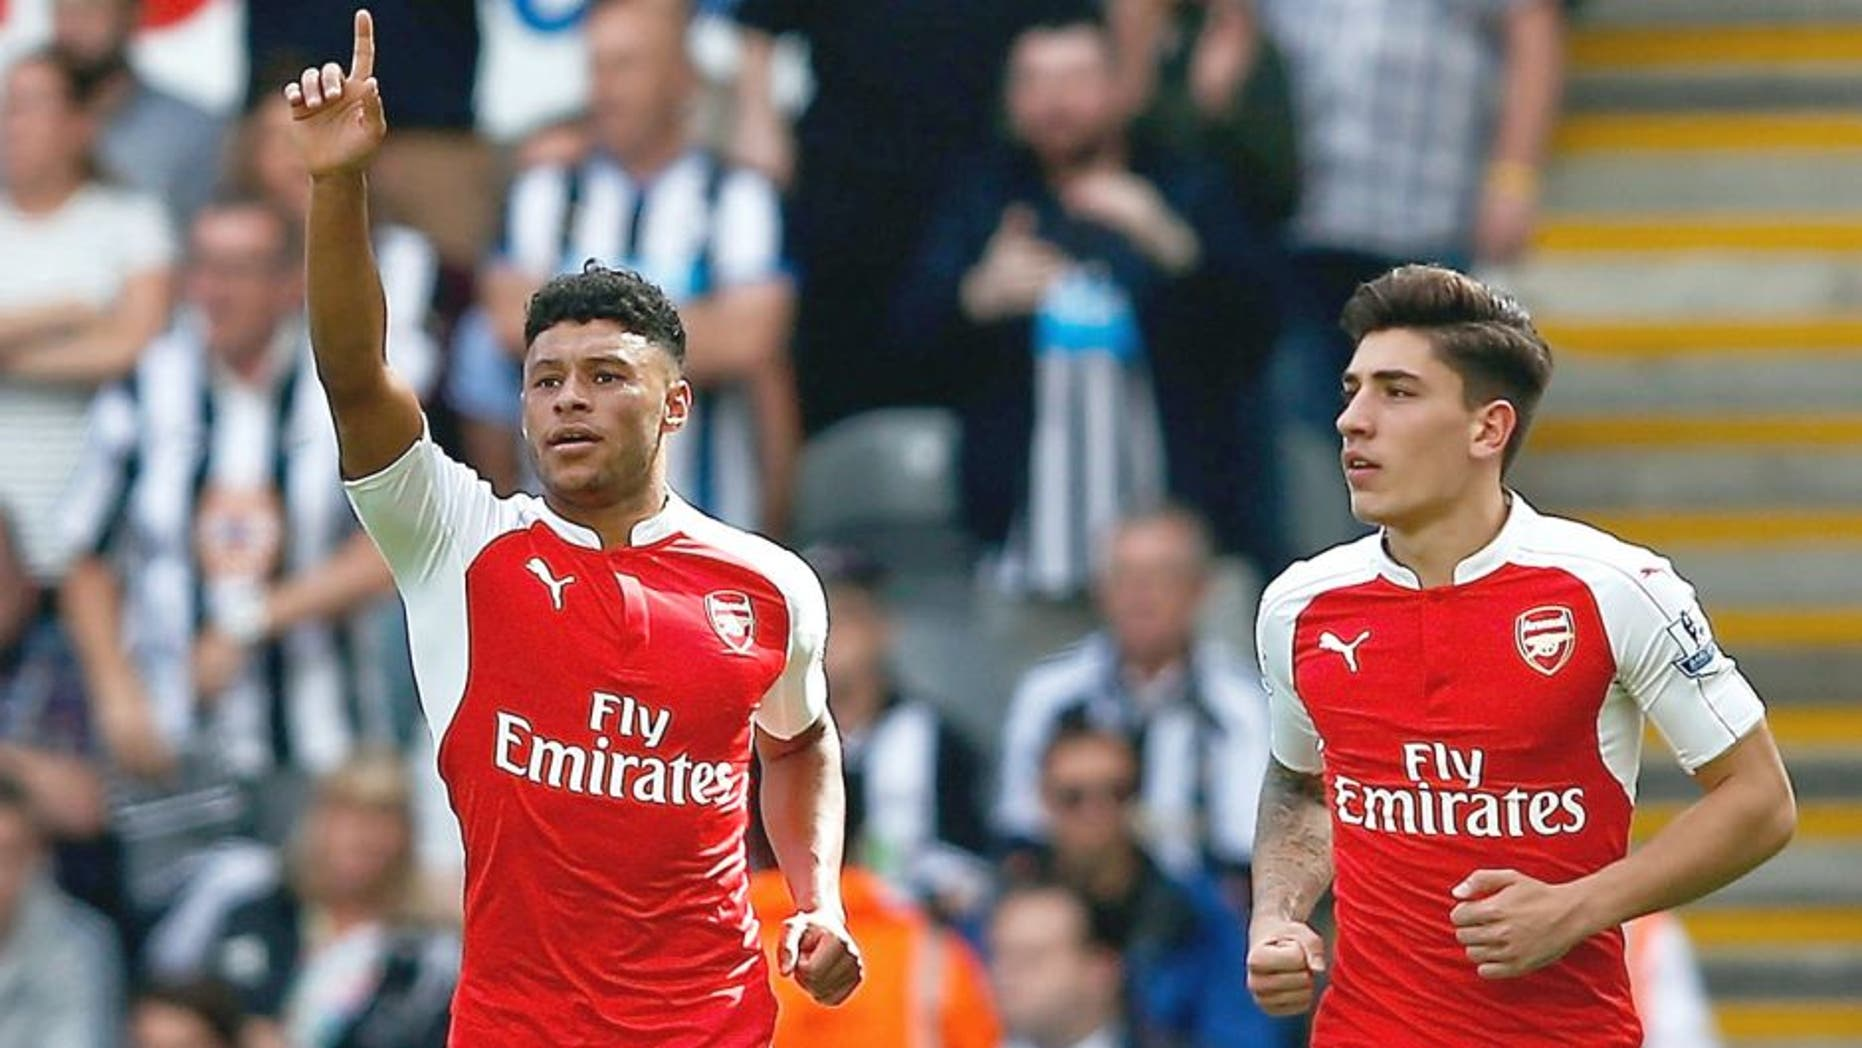 NEWCASTLE UPON TYNE, ENGLAND - AUGUST 29: Alex Oxlade-Chamberlain (L) of Arsenal celebrates his team's first goal, own goal by Fabricio Coloccini of Newcastle United during the Barclays Premier League match between Newcastle United and Arsenal at St James' Park on August 29, 2015 in Newcastle upon Tyne, England. (Photo by Dean Mouhtaropoulos/Getty Images)